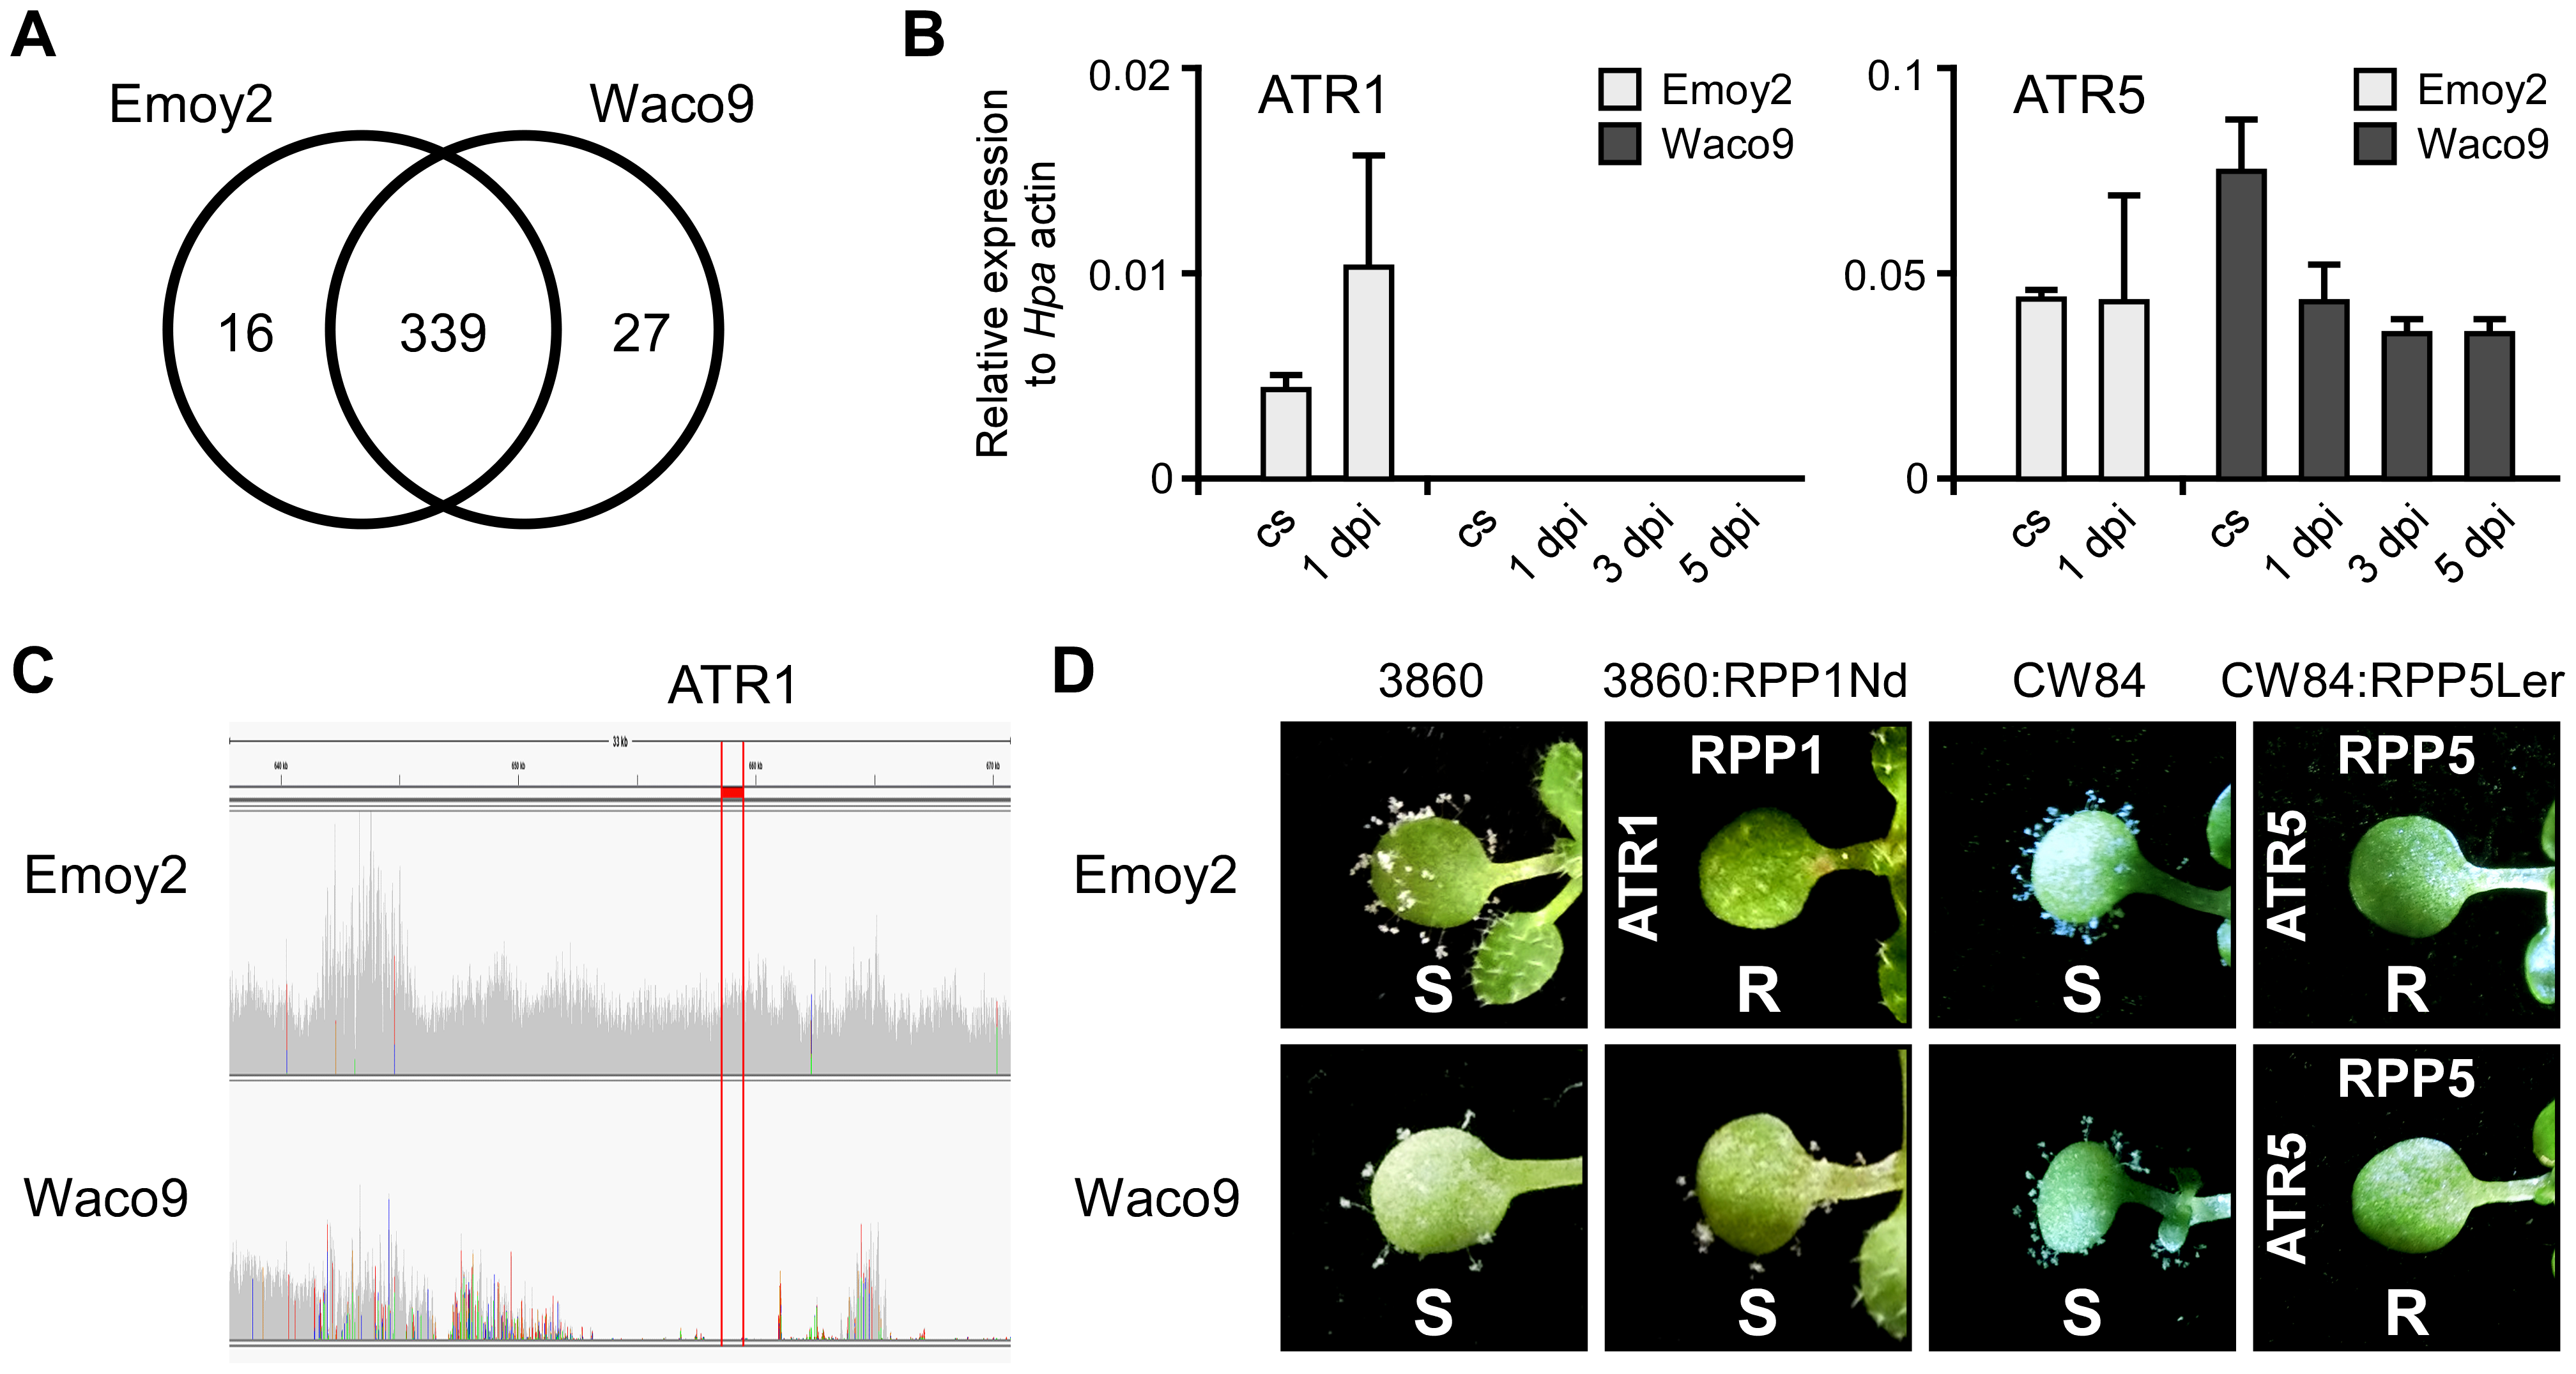 <i>Hpa</i> Waco9 overcomes recognition by RPP4, but not RPP5.